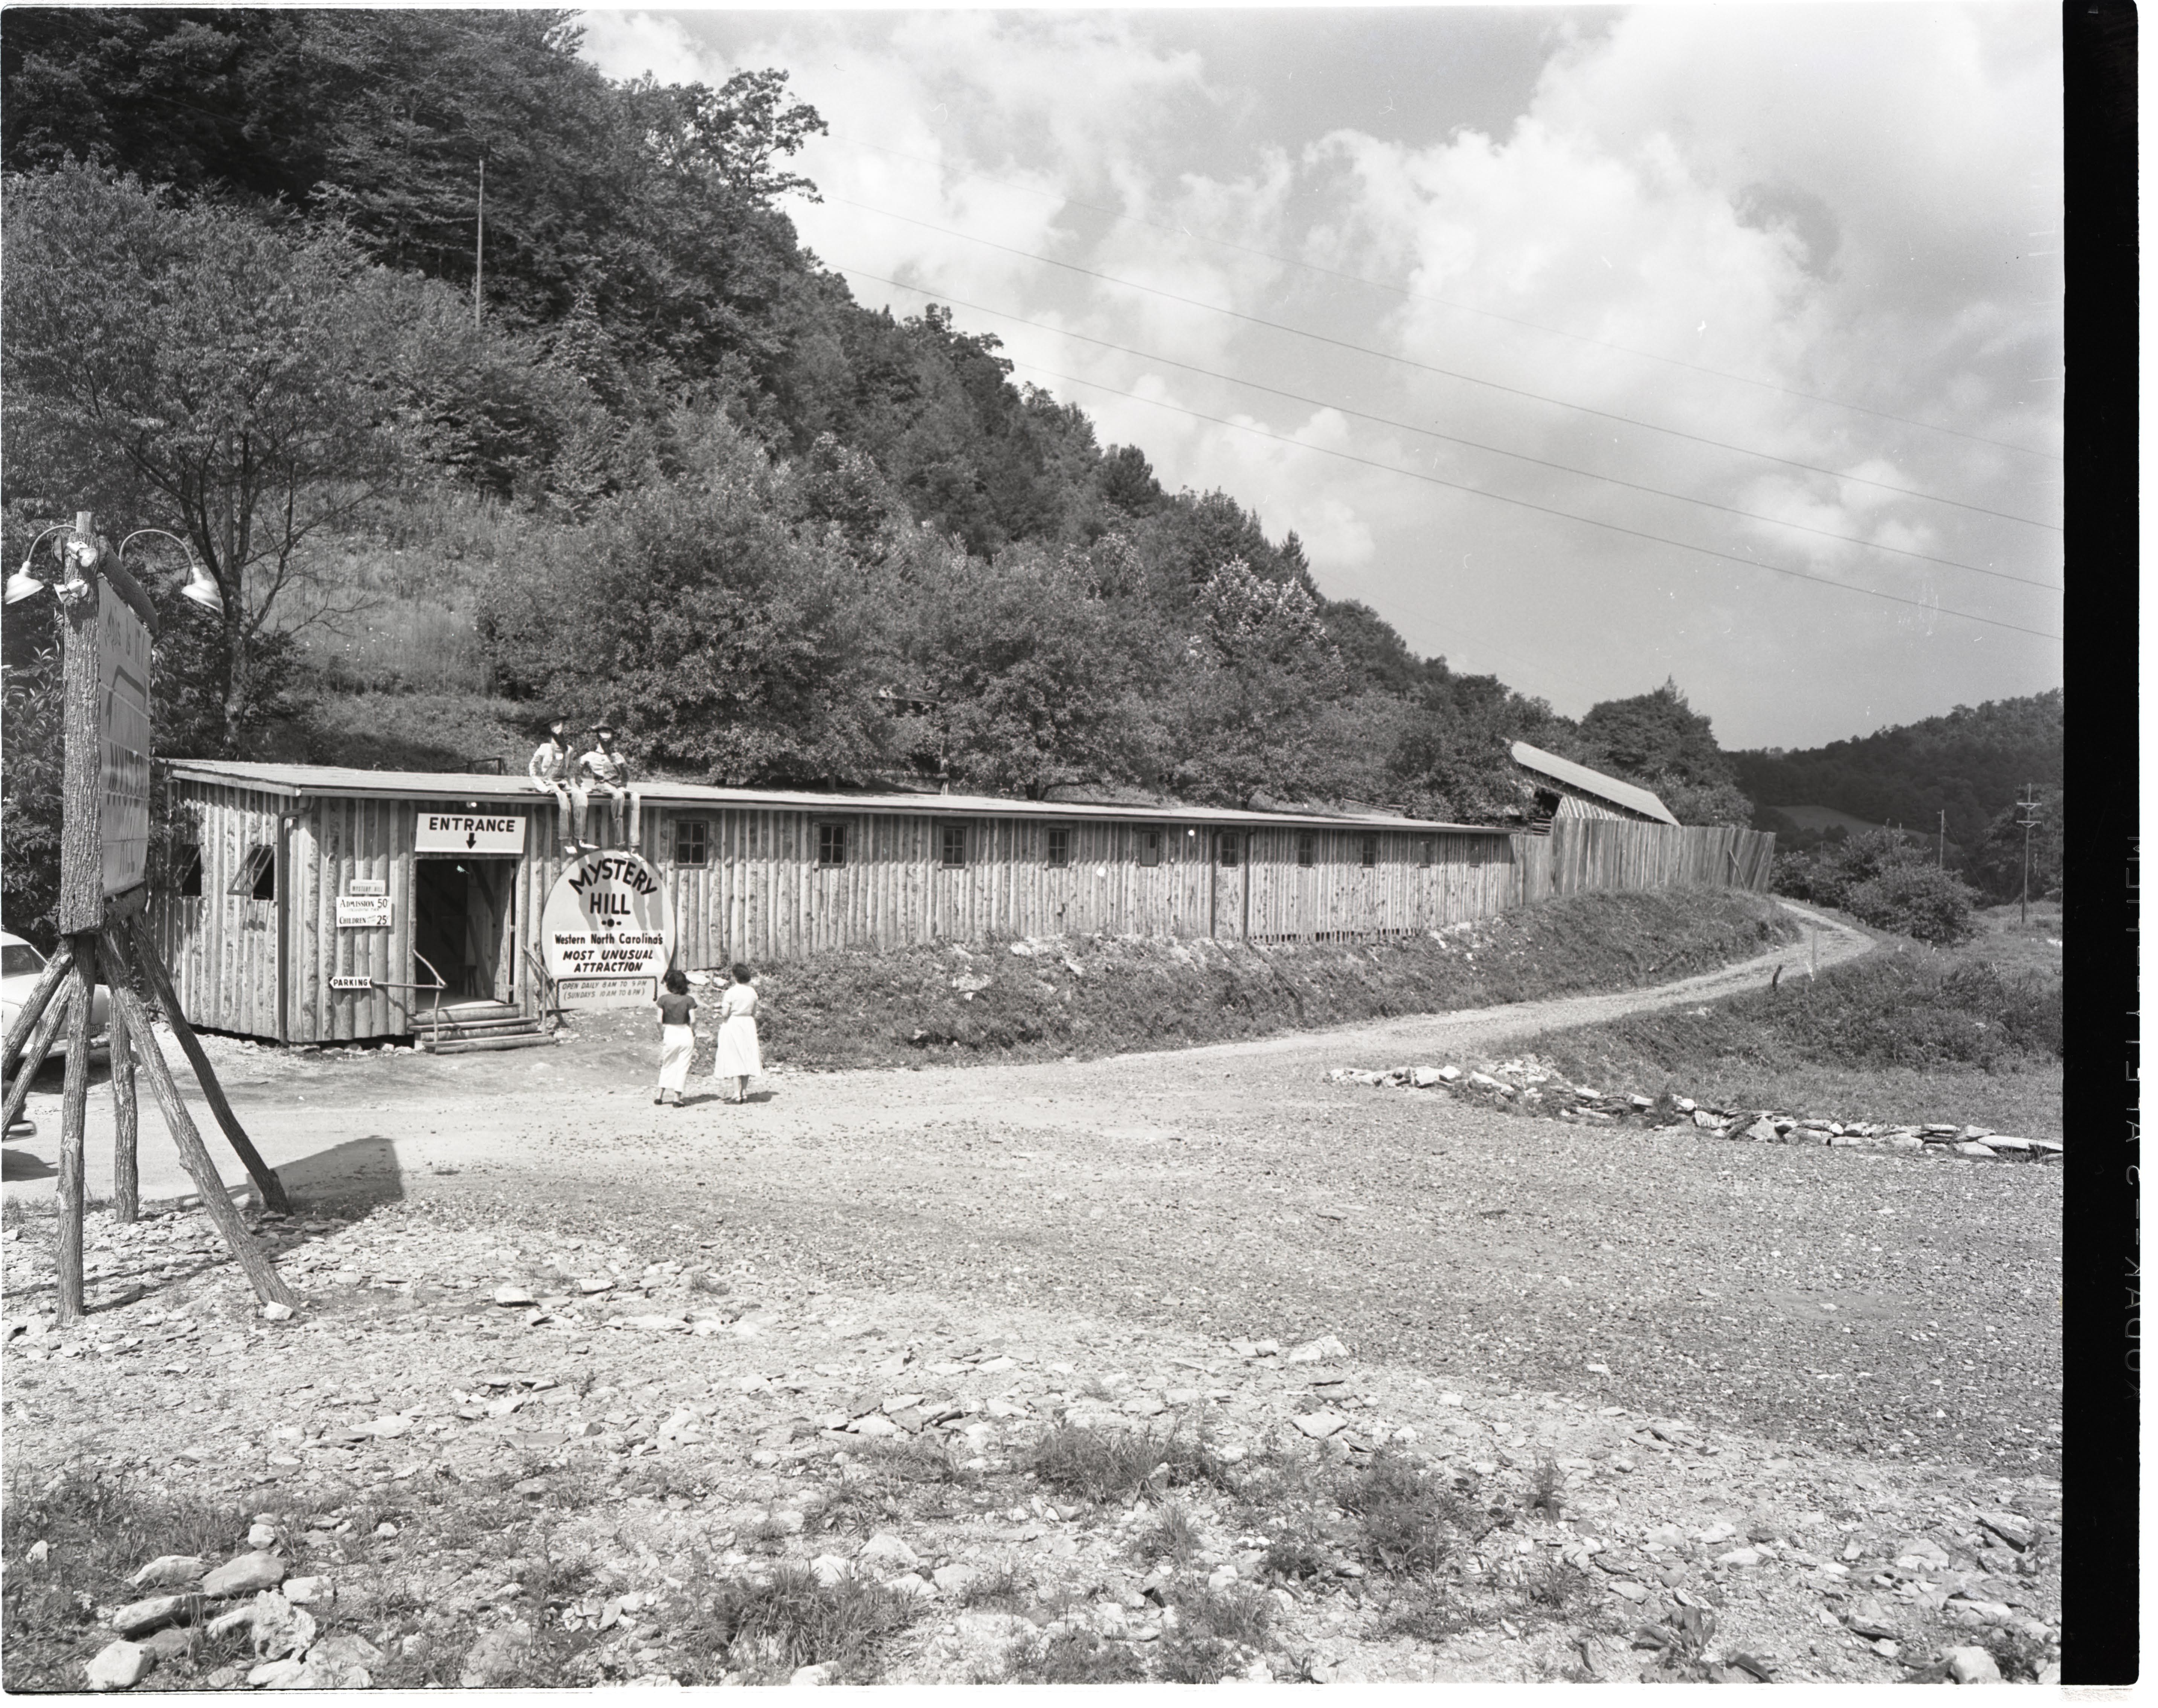 """Two women walking up to Mystery Hill circa. 1955. Admission at this time was a mere 50 cents for adults and 25 cents for children!  """"Two Women at Mystery Hill, 1955,"""" Digital Watauga, accessed October 17, 2017, http://digitalwatauga.org/items/sho"""